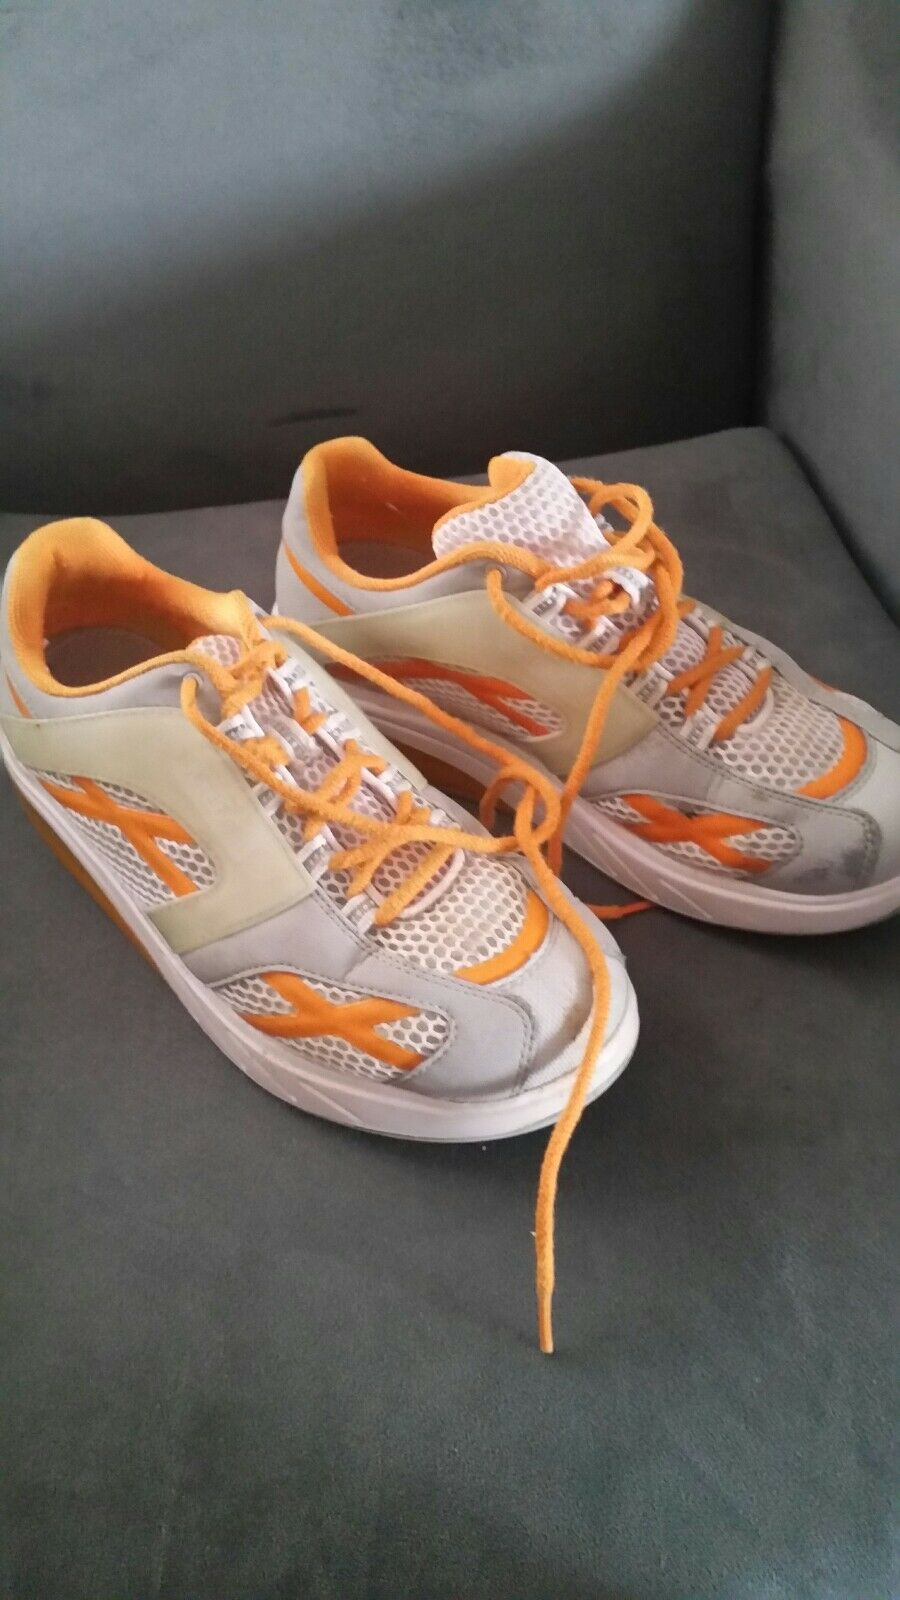 MBT PHYSIOLOGICAL FOOTWEAR LEATHER WOMEN'S WALKING SHOES SIZE 9.5